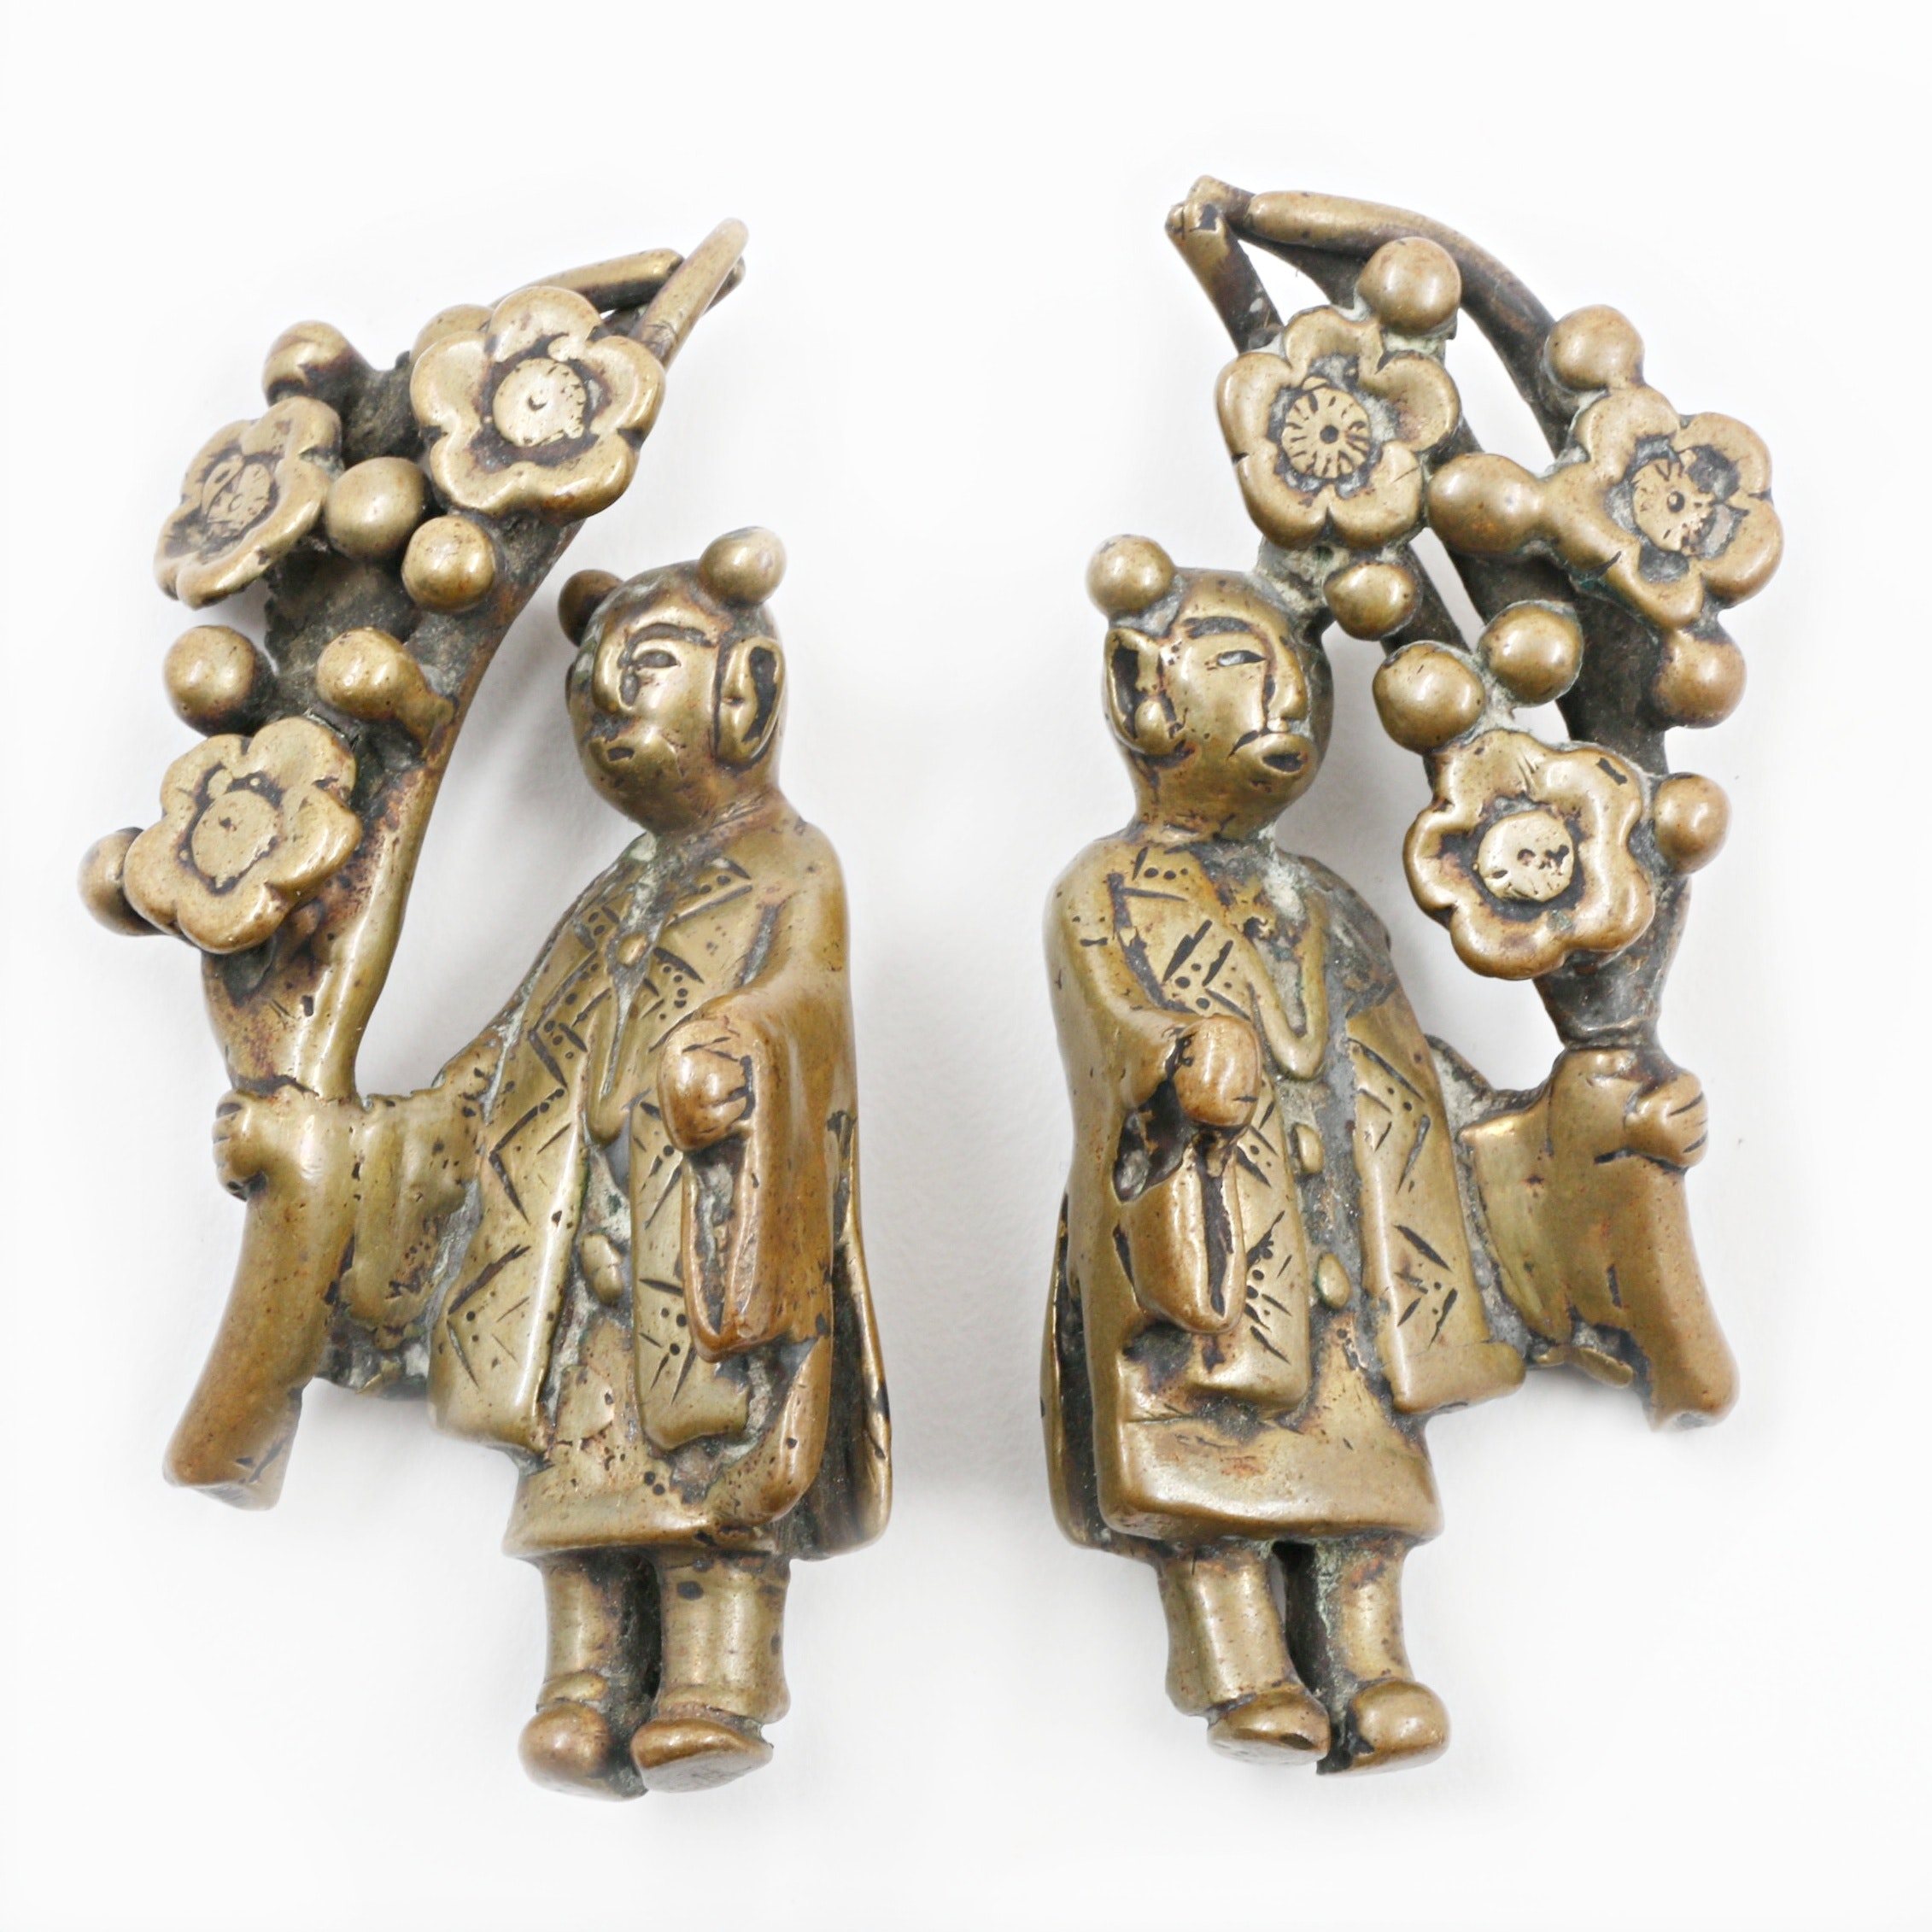 Pair of Chinese Bronze Figurative Paperweights